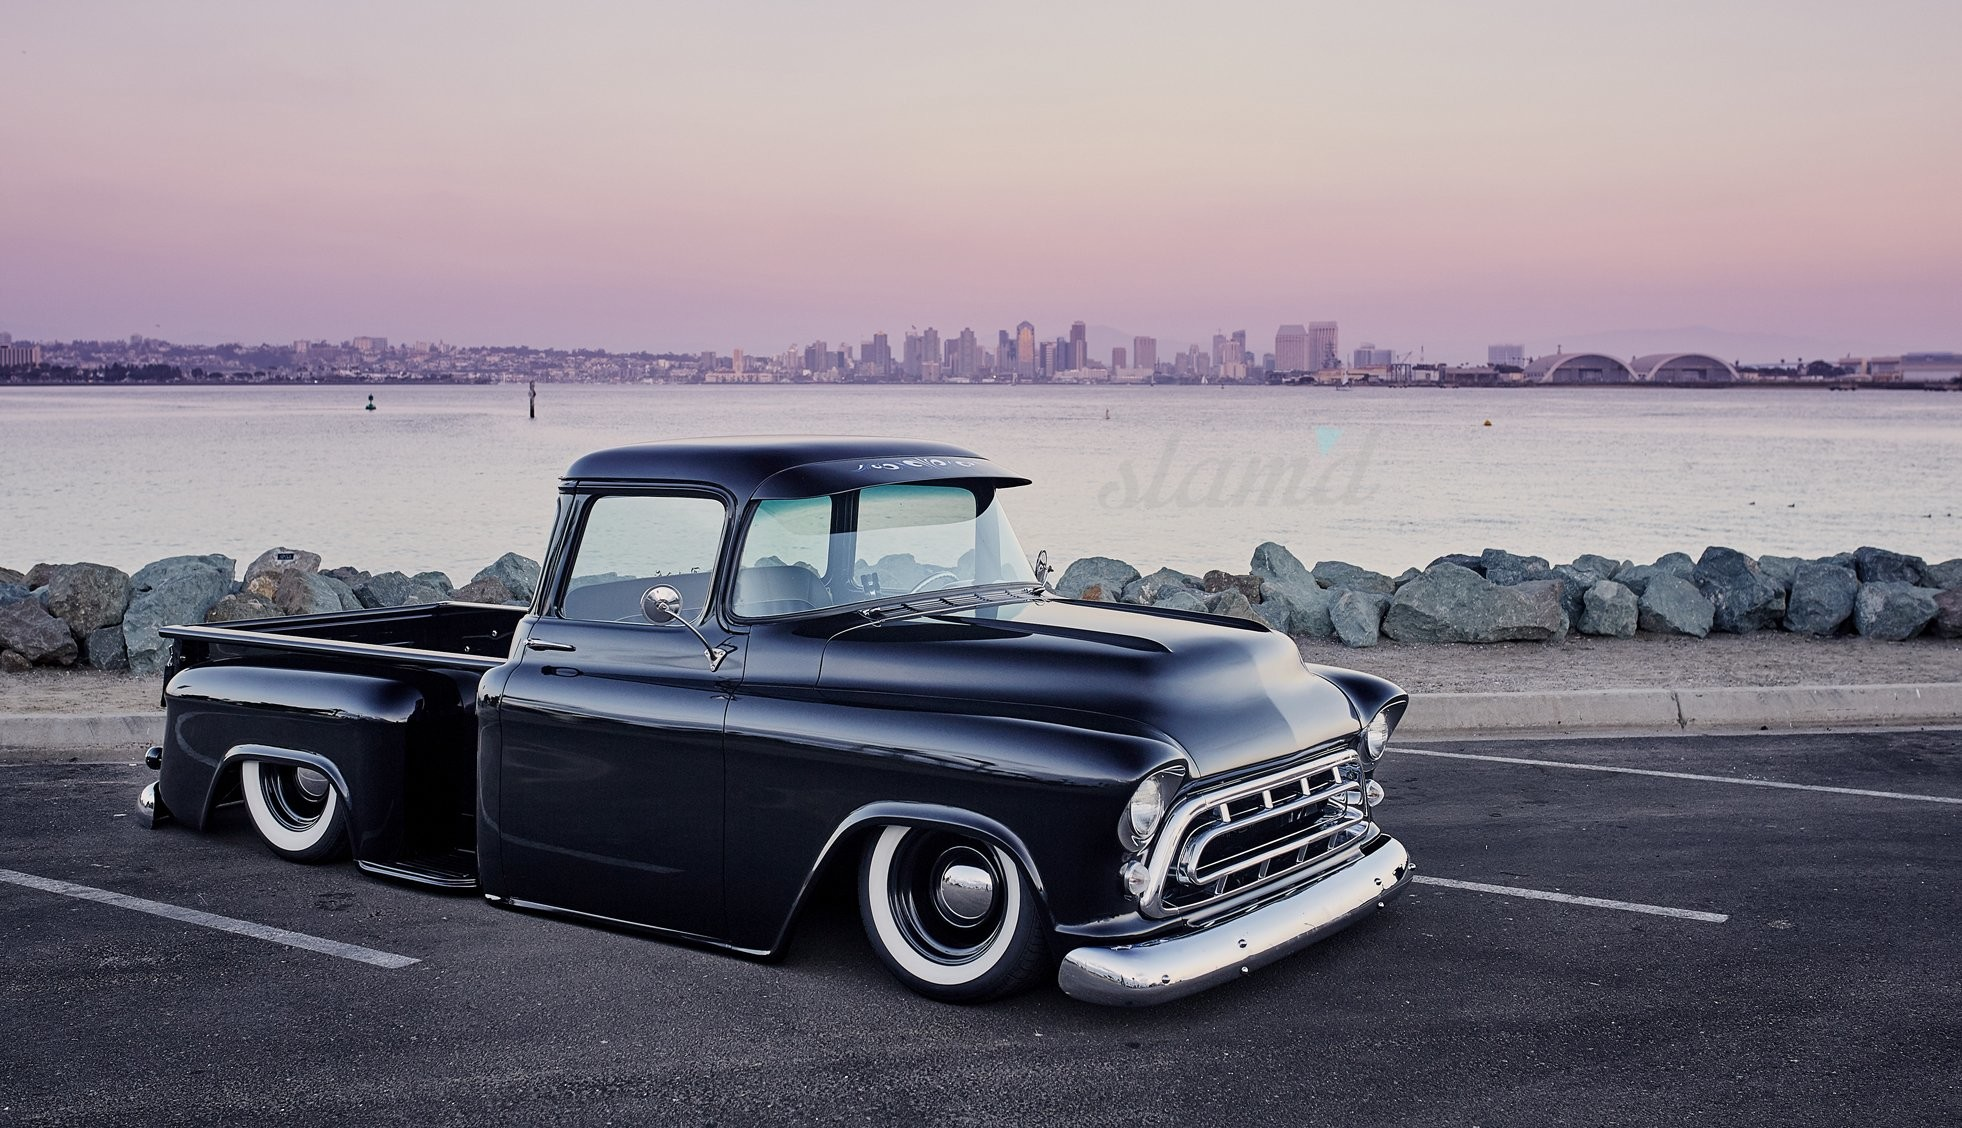 Chevy Truck Wallpaper Hd 48 Images 1949 Pickup Hot Rod 2560x1600 Wallpapers Wallpaperup